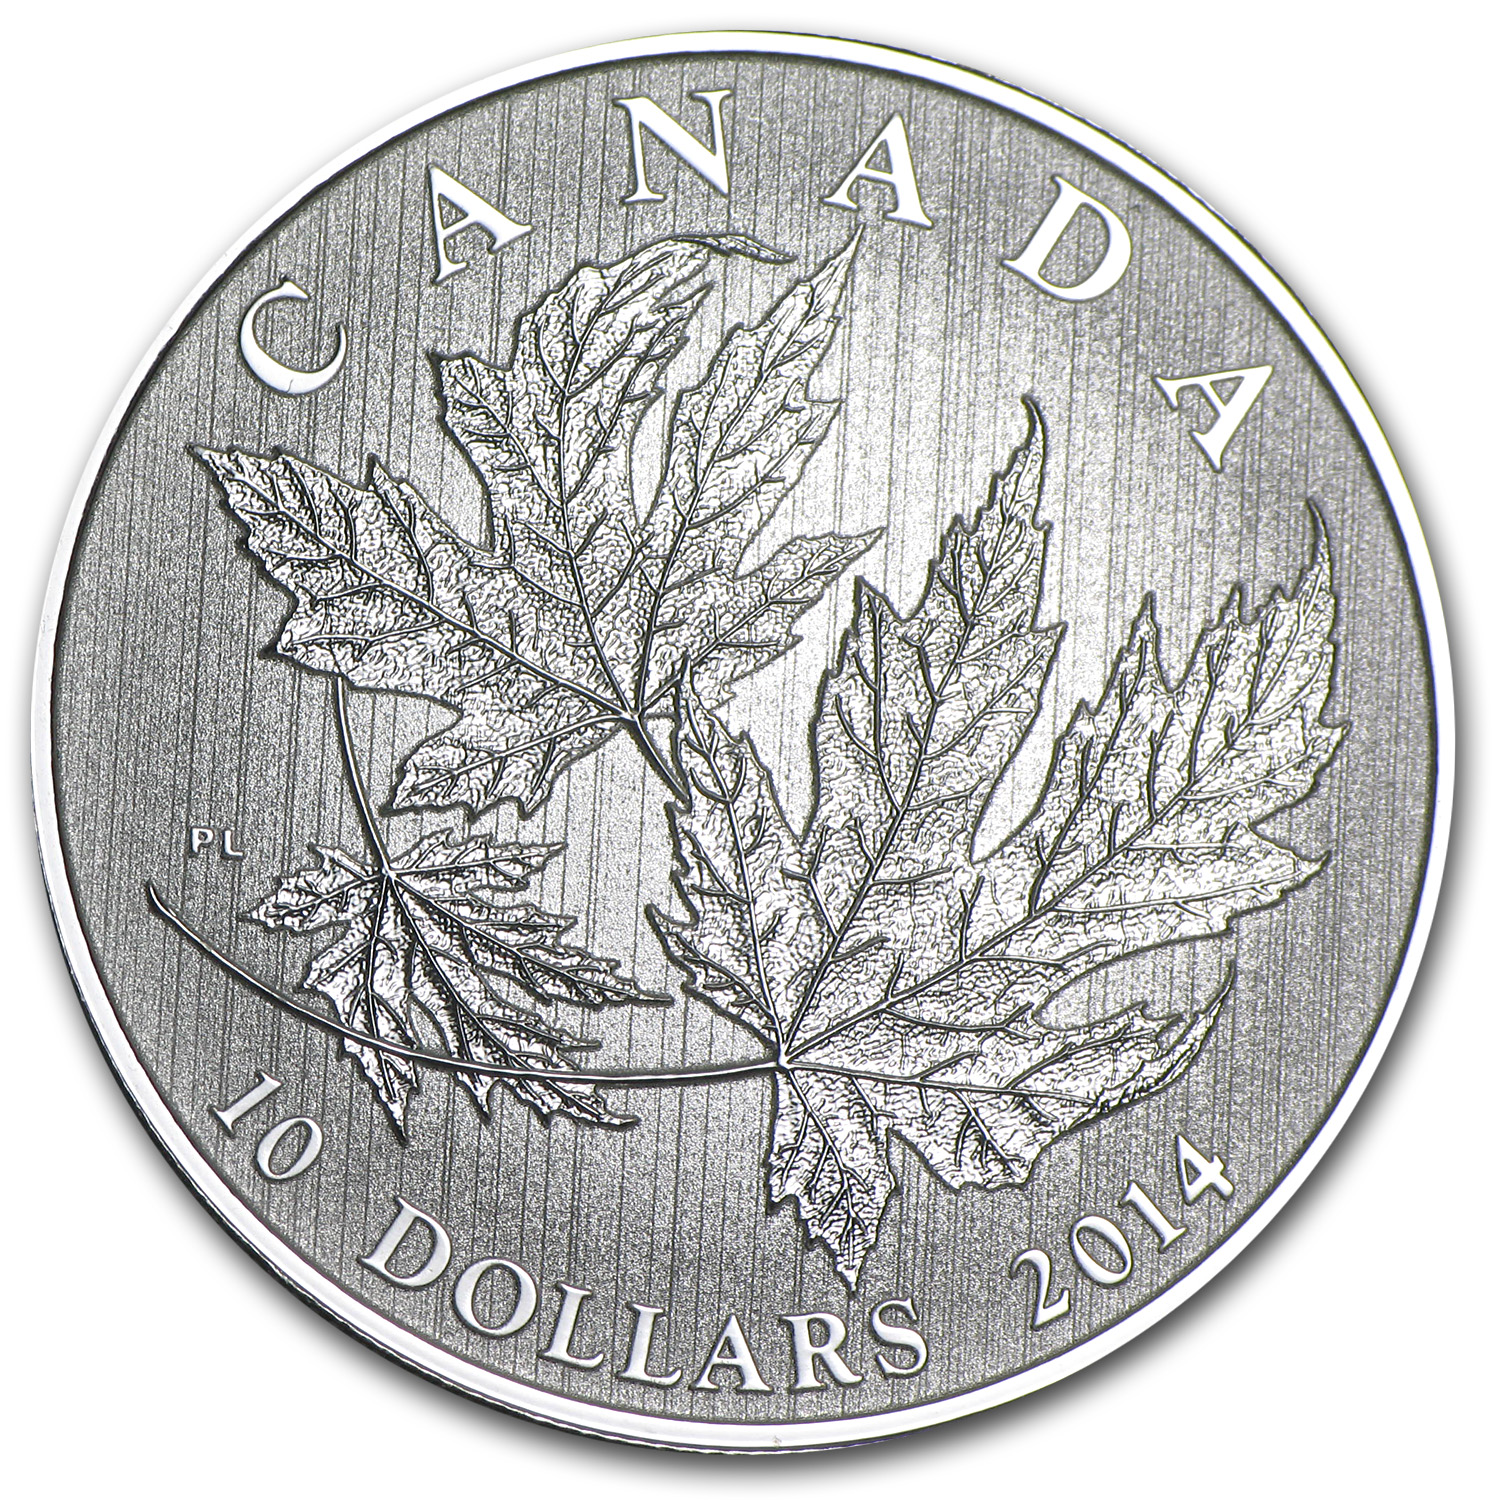 2014 1/2 oz Silver Canadian $10 Maple Leaf